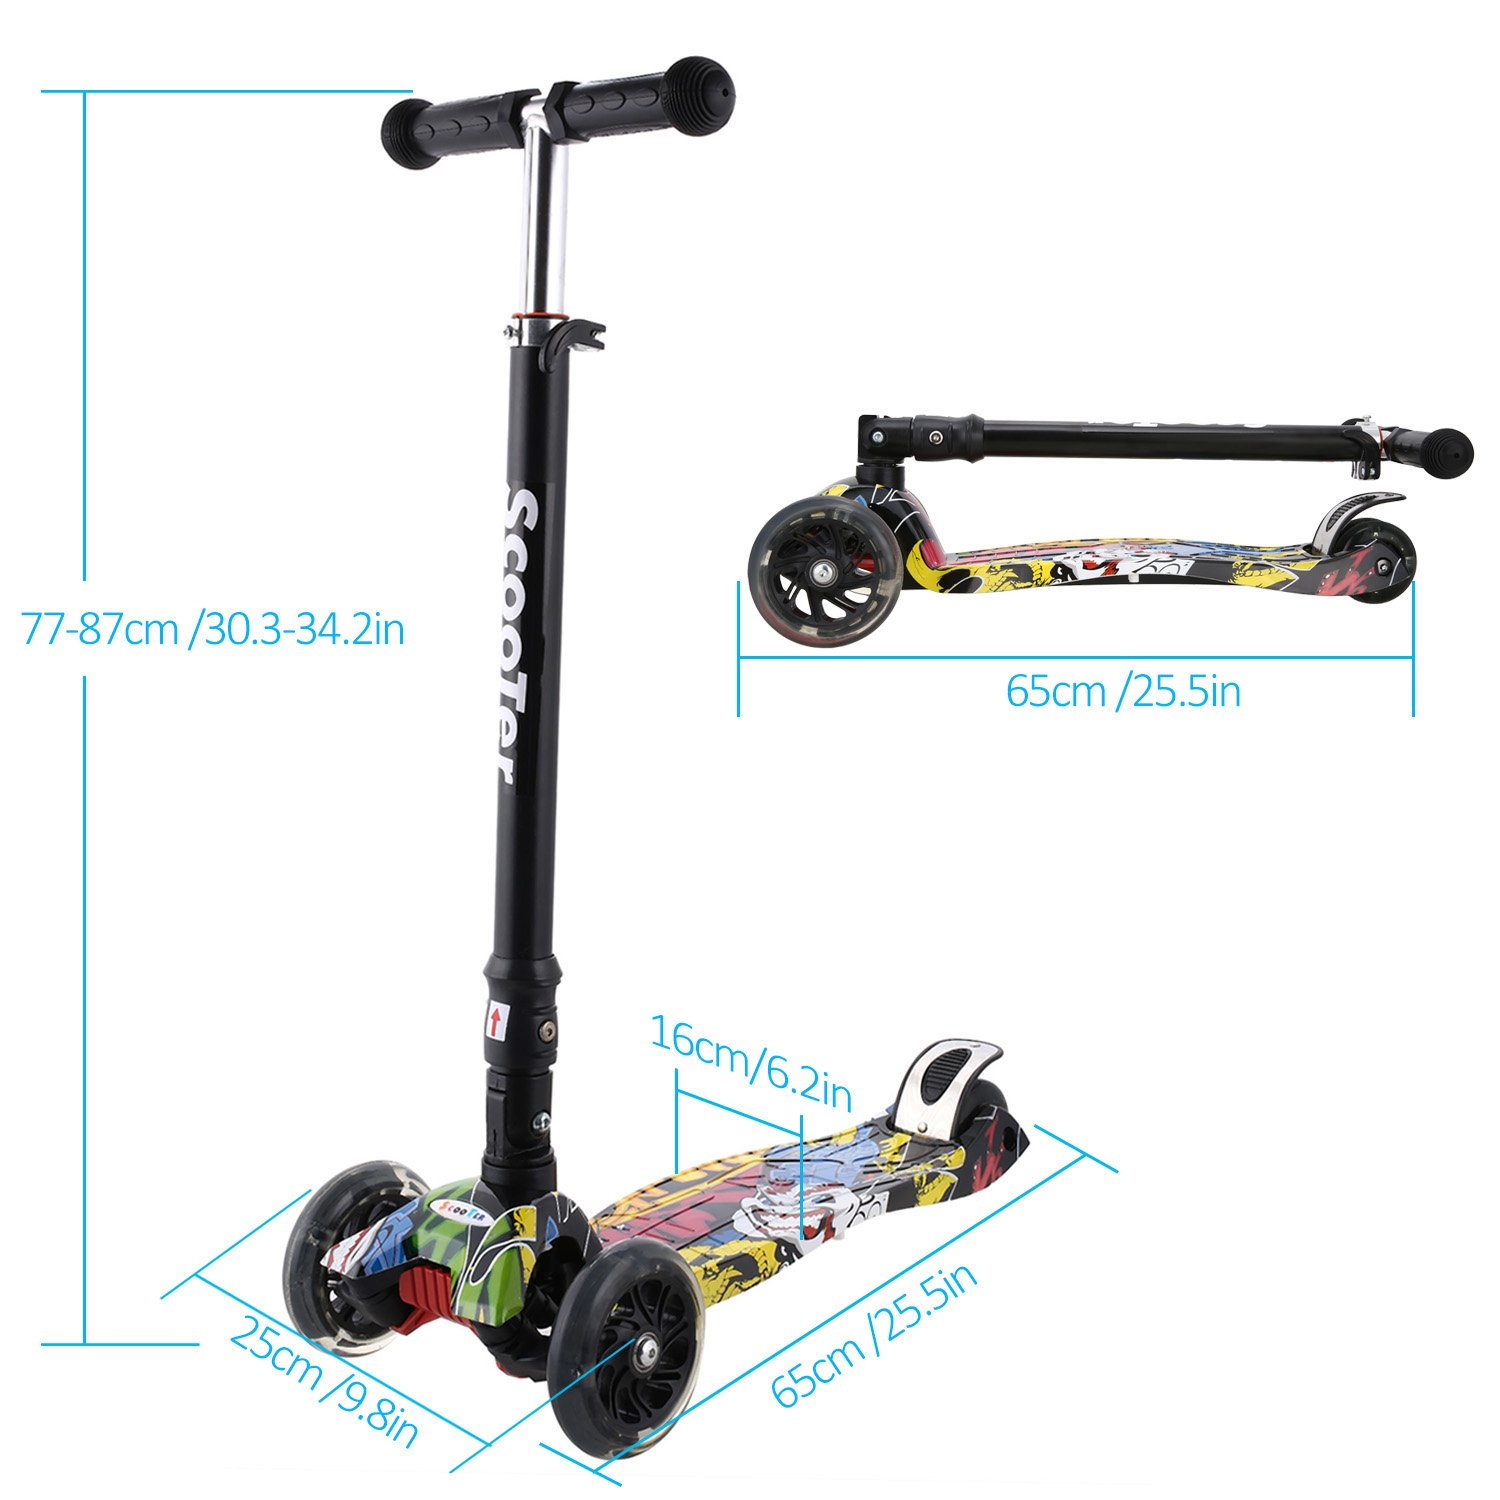 Hikole Scooter Kids Adjustable Height Handle Bars Graffiti Deck Kick Scooter Foldable Children with 3 Flashing PU Wheels Best Gifts for Boys Girls